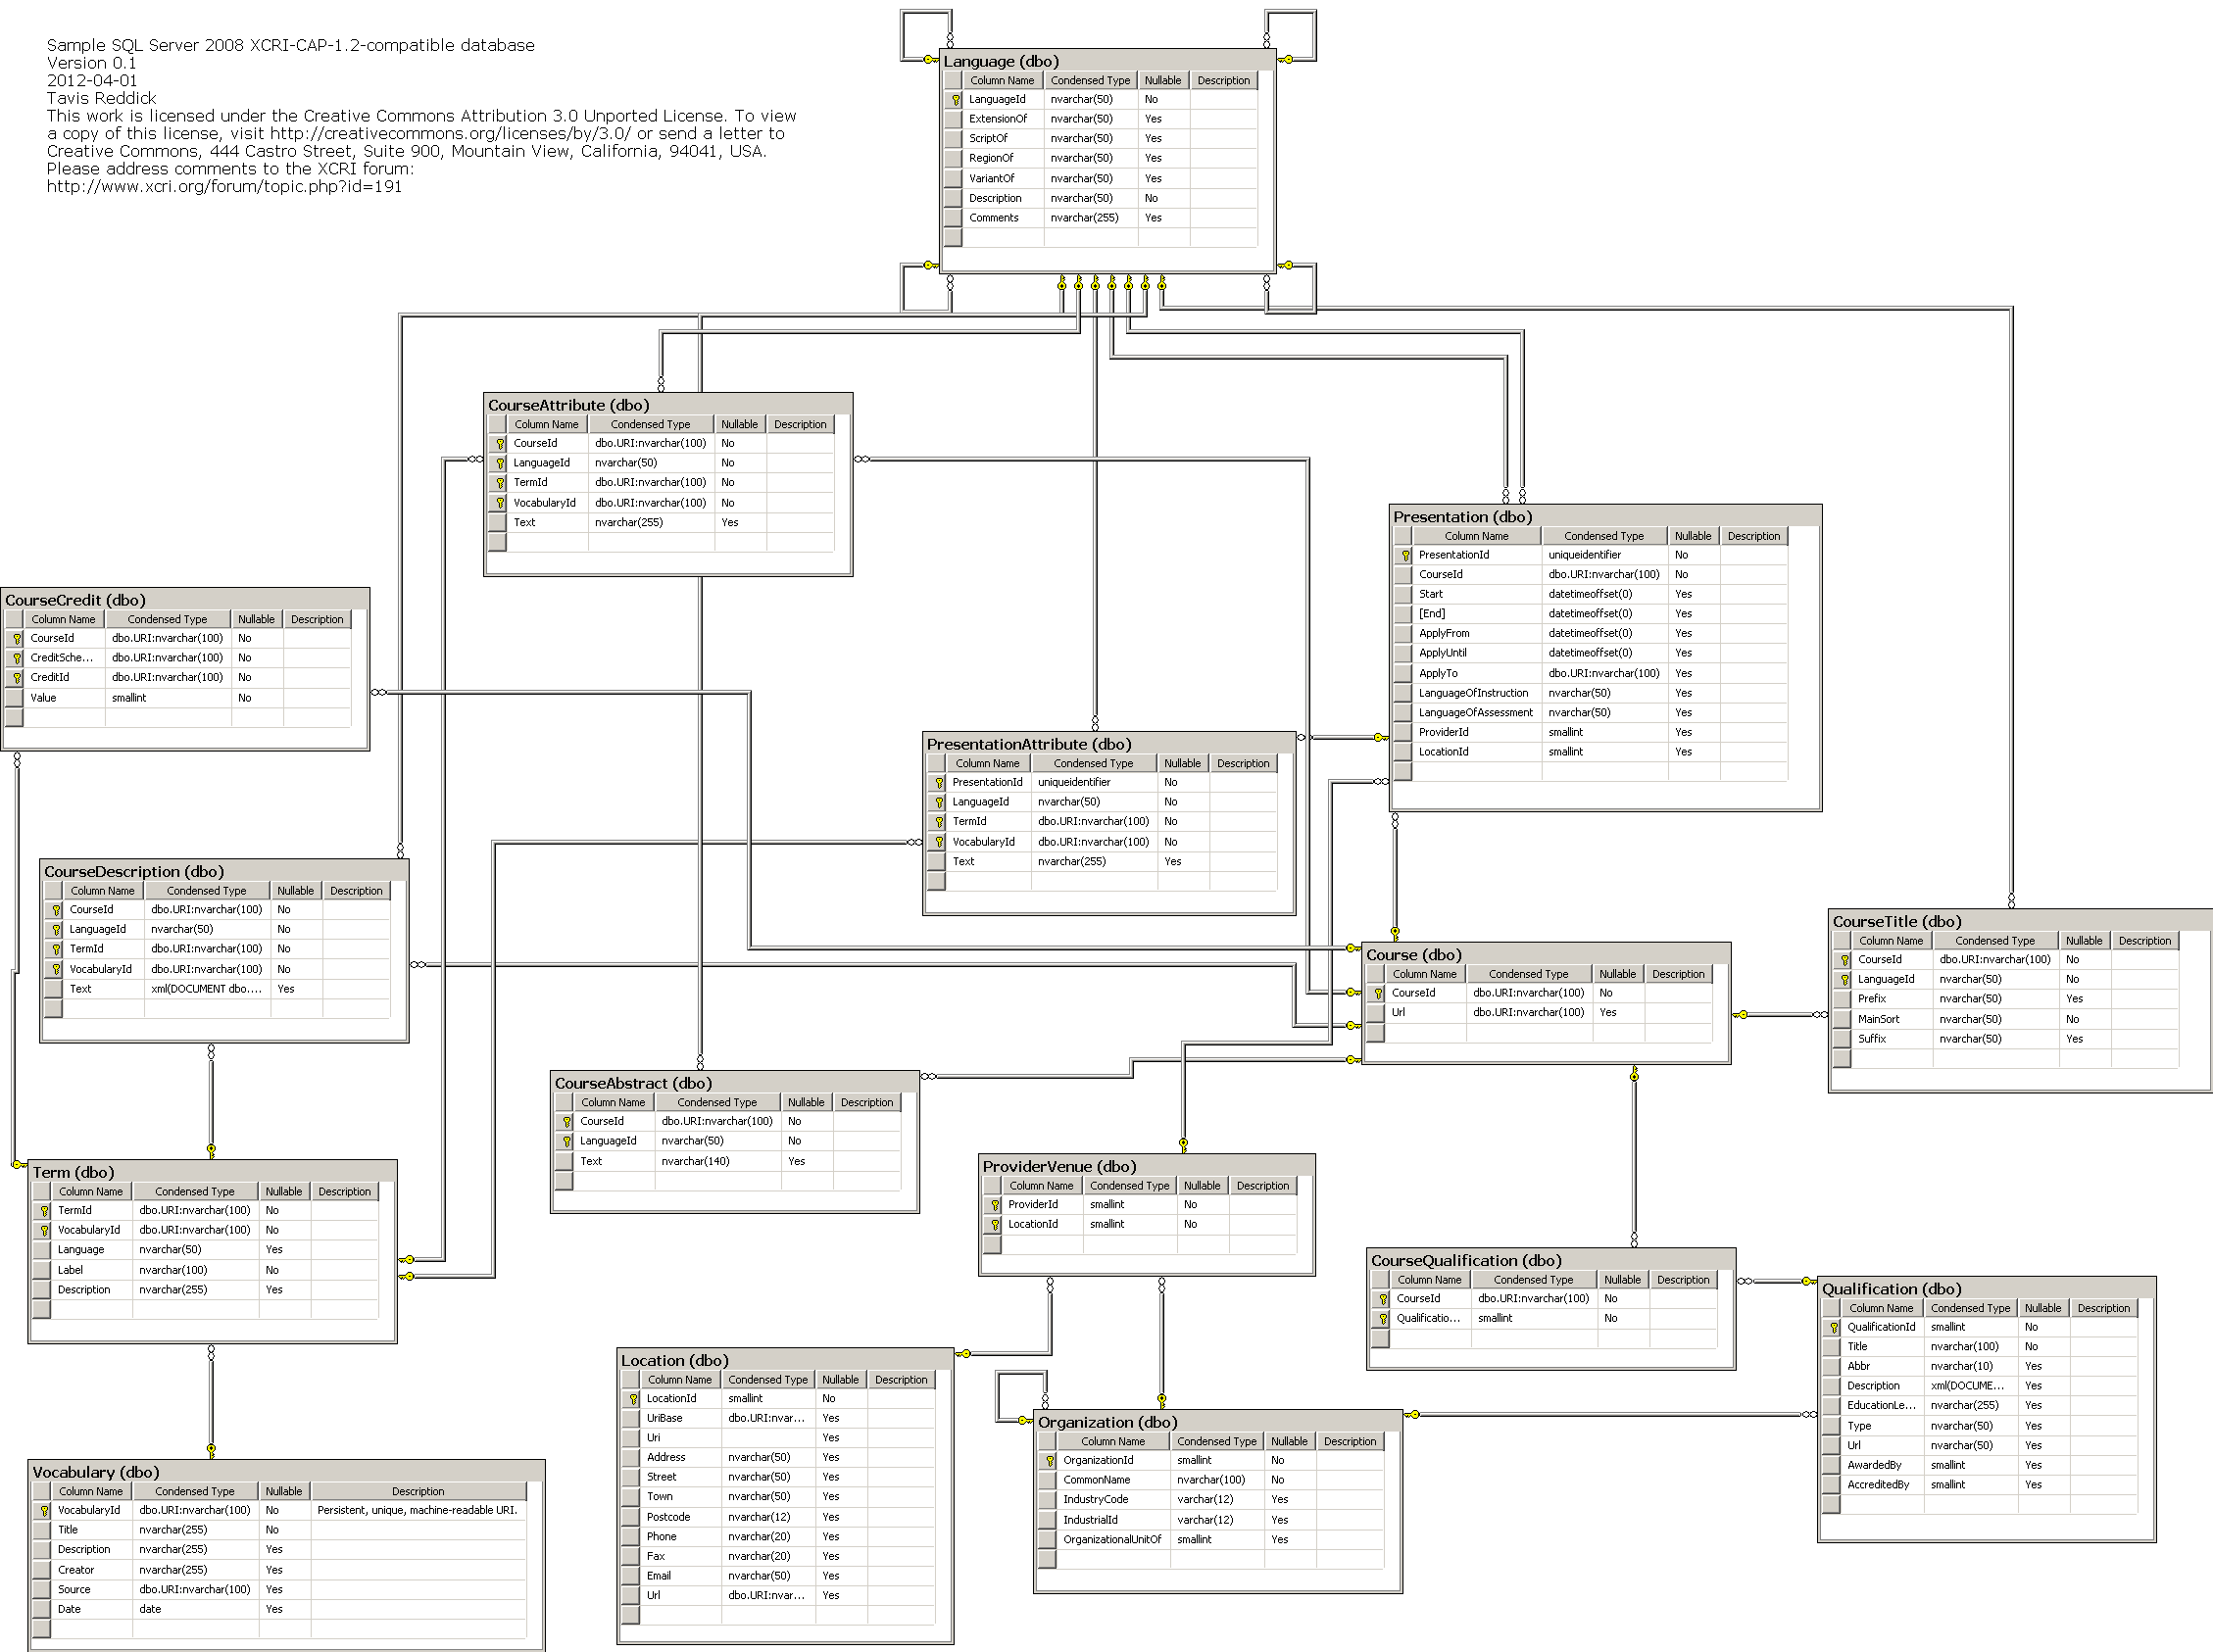 Sample sql server 2008 code for building an xcri cap 12 compatible database diagram of xcri cap 12 compatible database ccuart Image collections